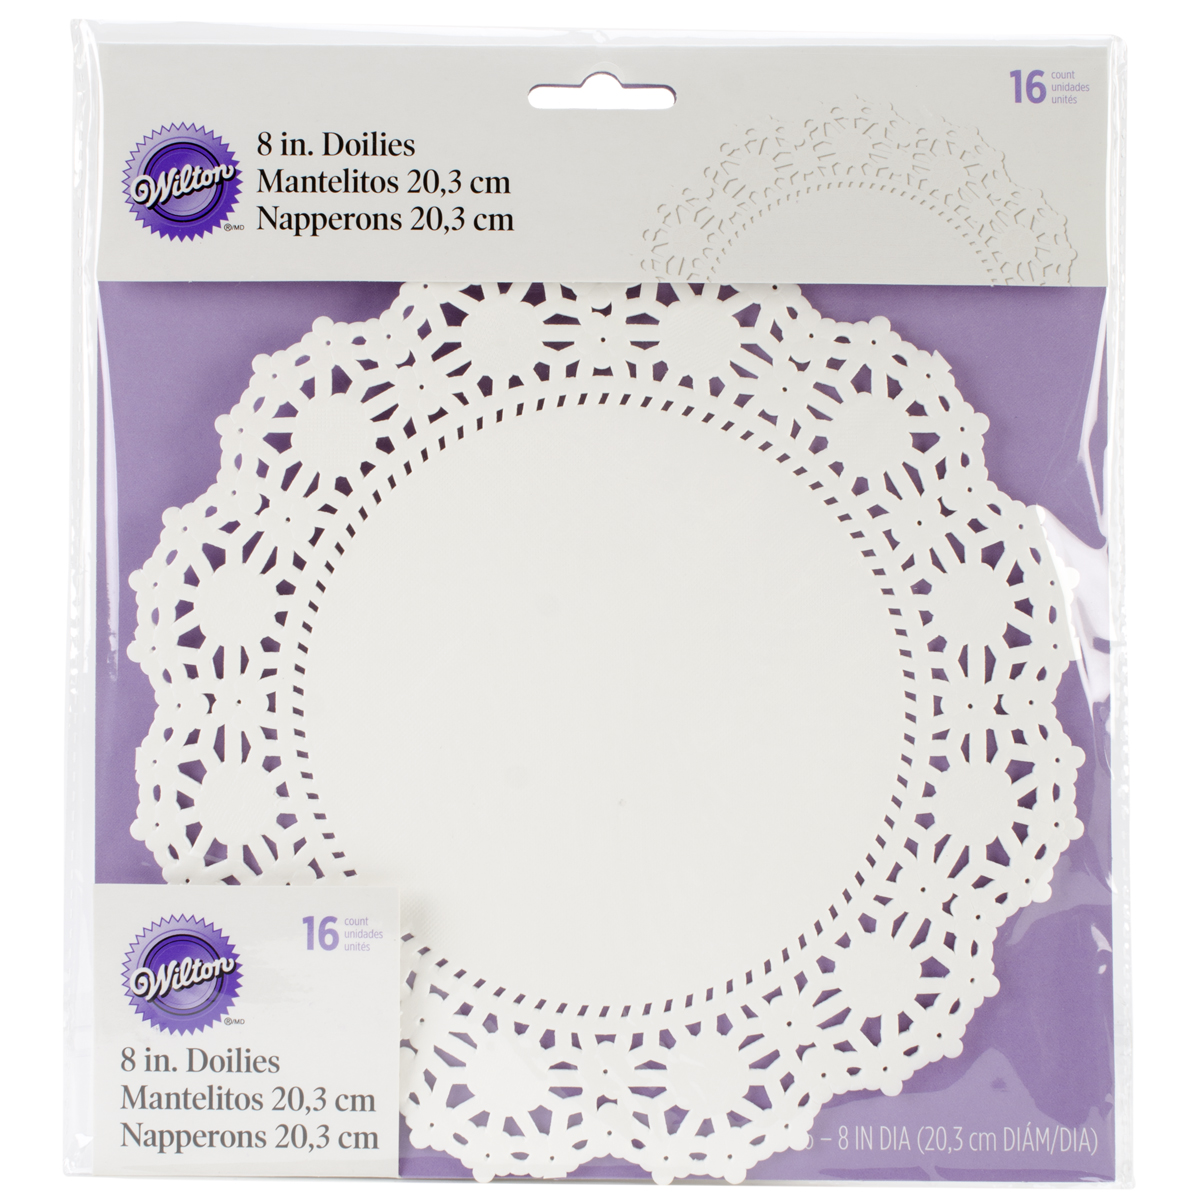 Wilton Greaseproof Doilies, 8-Inch, White Circle, 16-Pack Multi-Colored